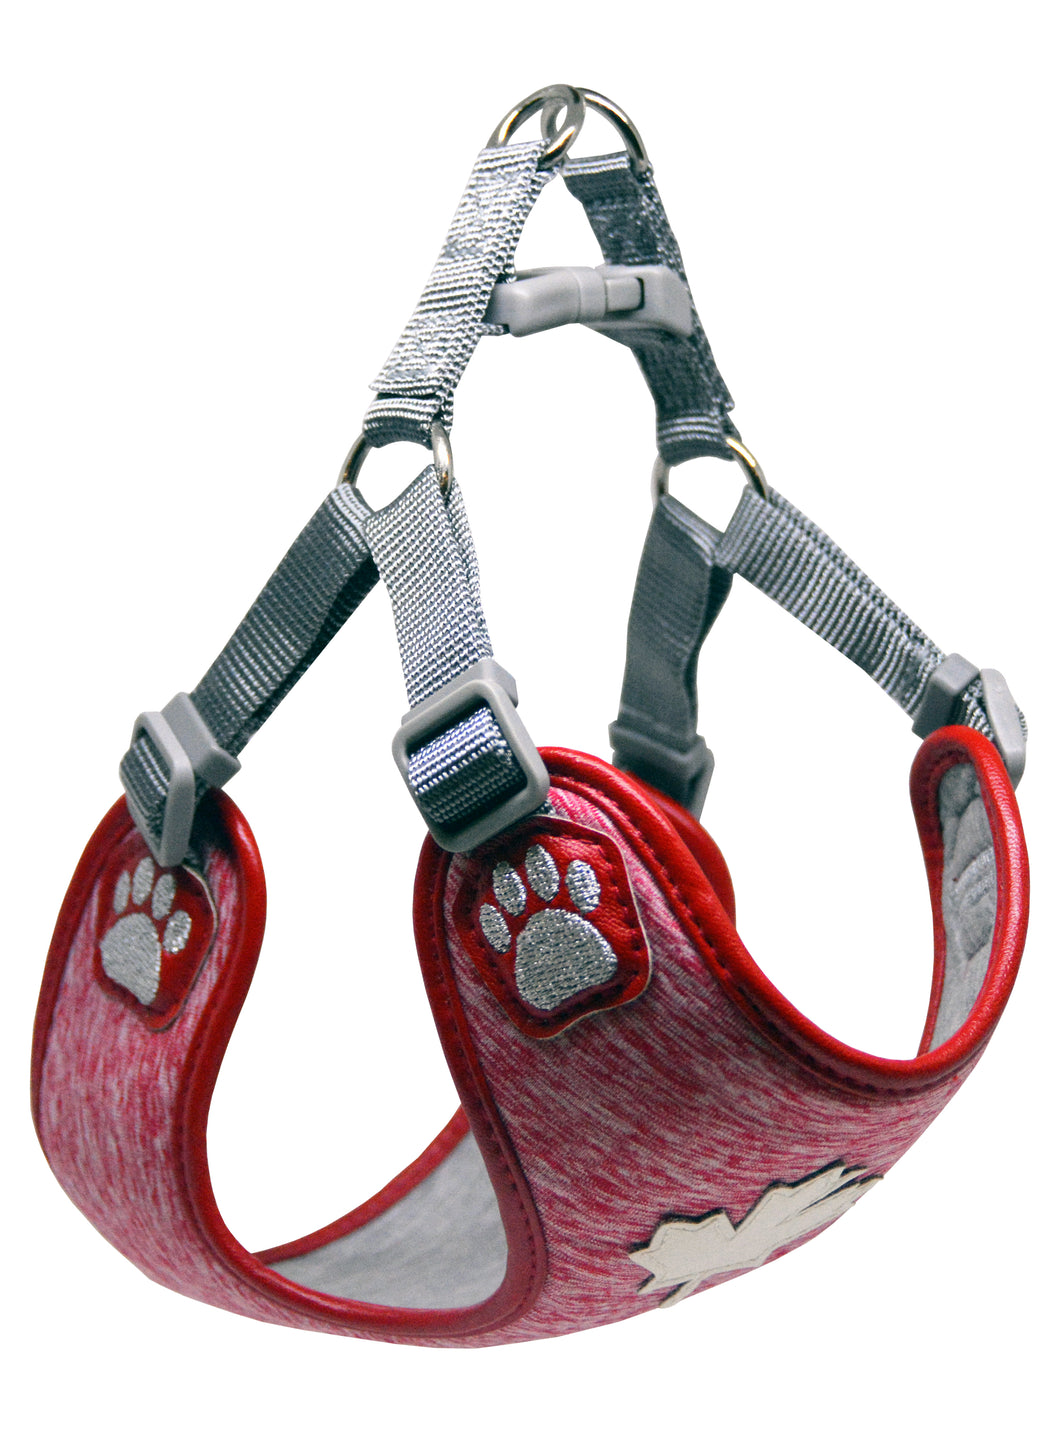 Pretty Paw - Canada Red Harness - Chubbs Bars, Treats - pet shampoo, Woofur - Chubbs Bars Company, Woofur Natural Pet Products - Chubbs Bars Canada